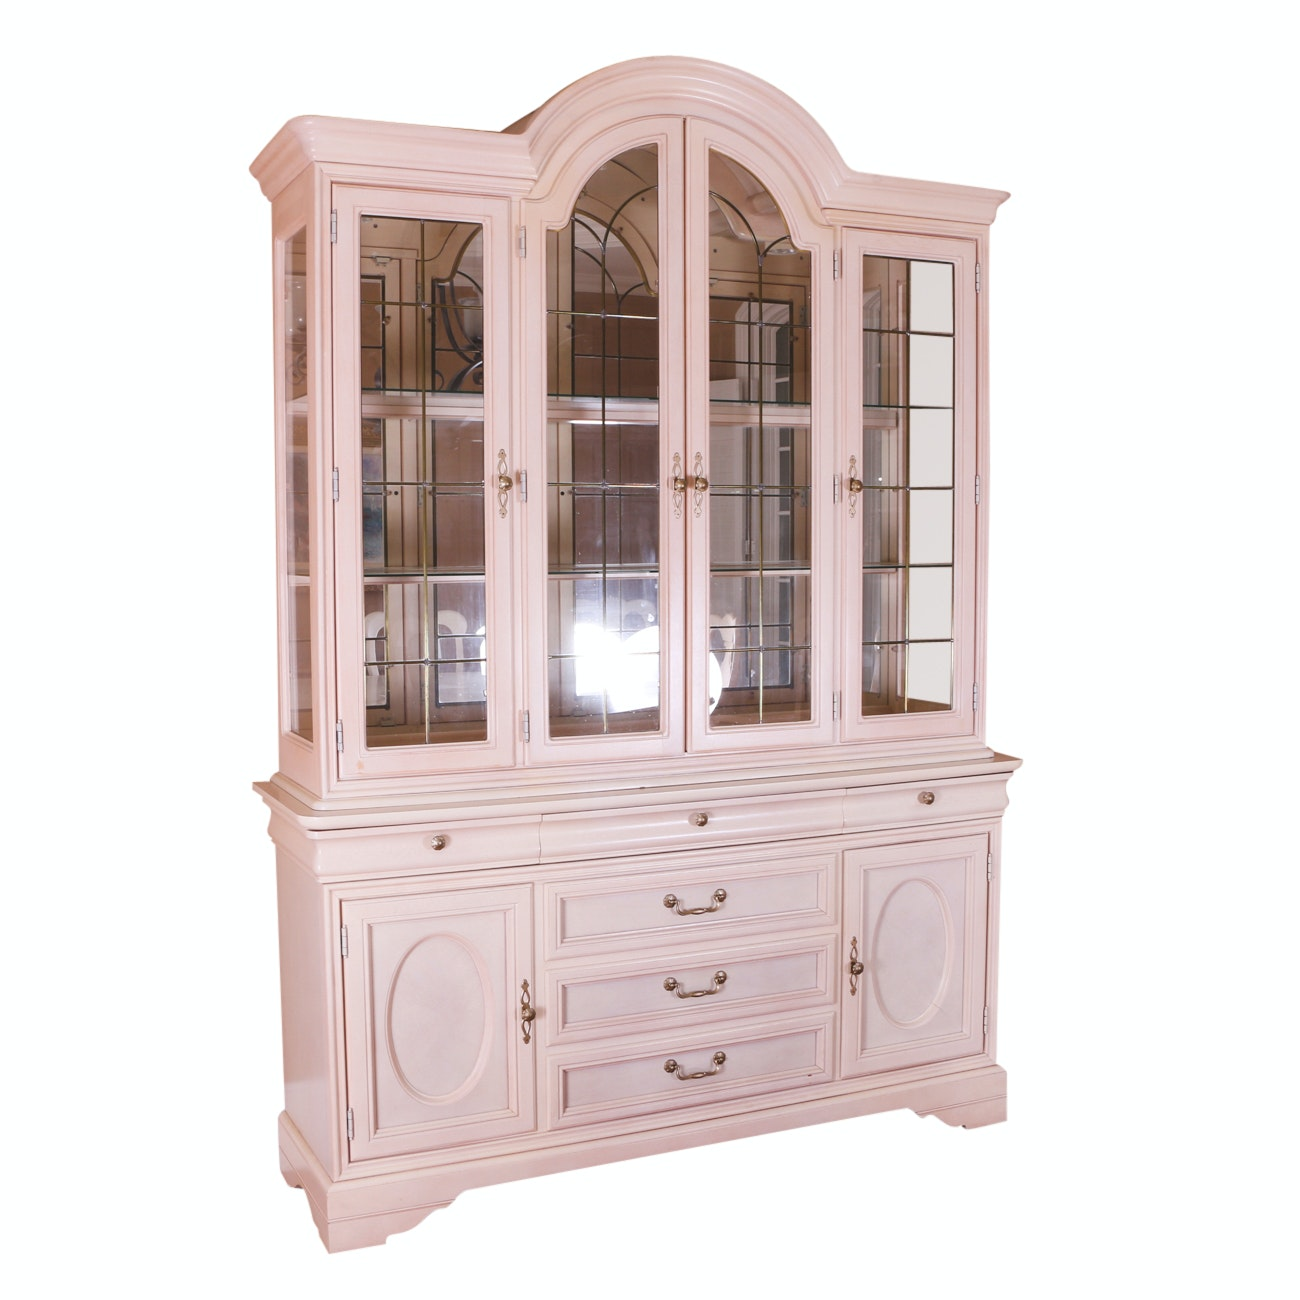 Traditional China Cabinet In White Finish By Lexington Furniture ...